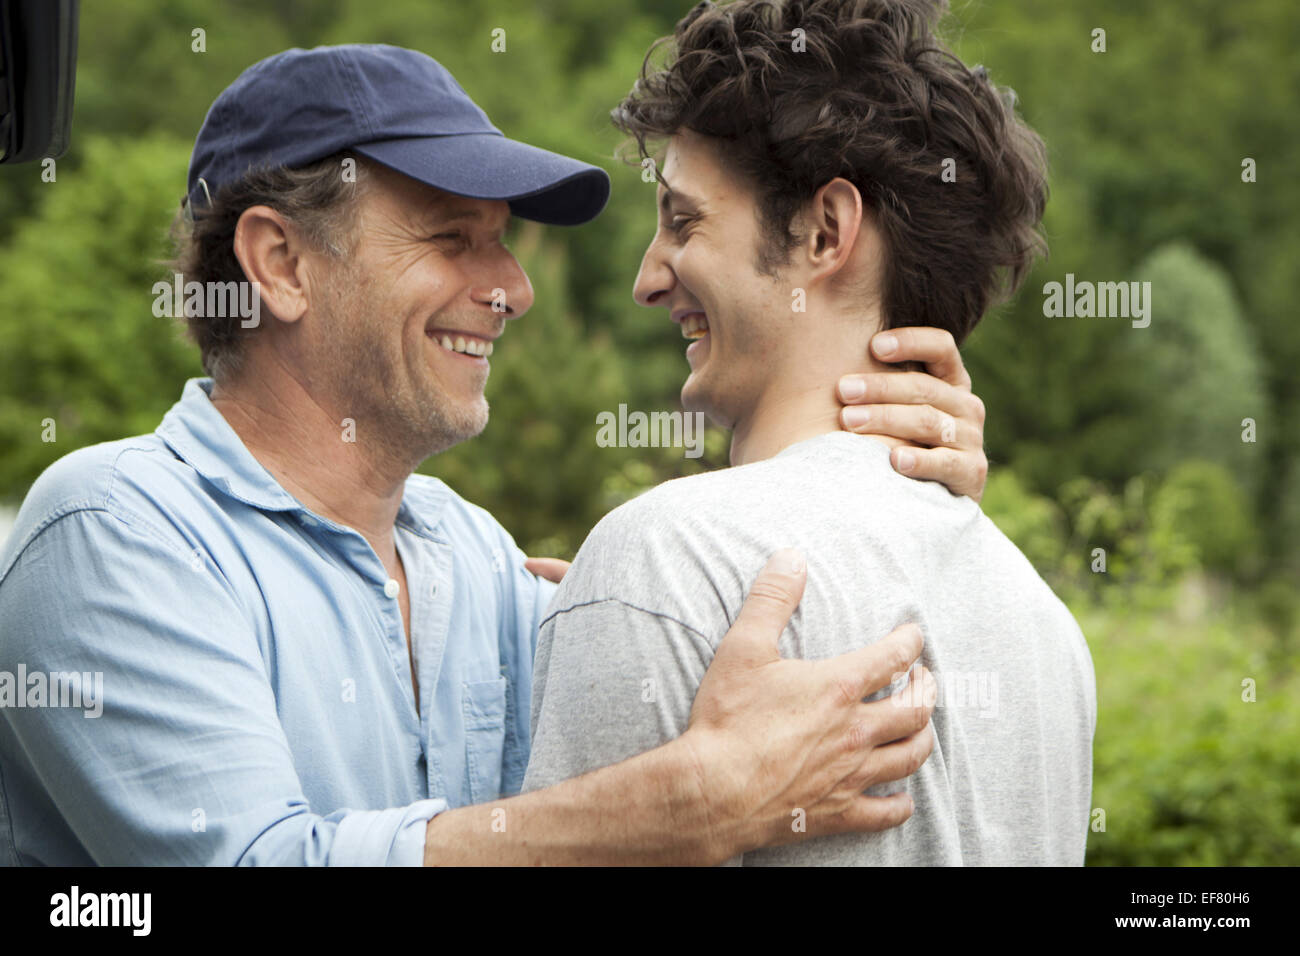 CHARLES BERLING & PIERRE NINEY IT BOY; 20 ANS D'ECART (2013) - Stock Image